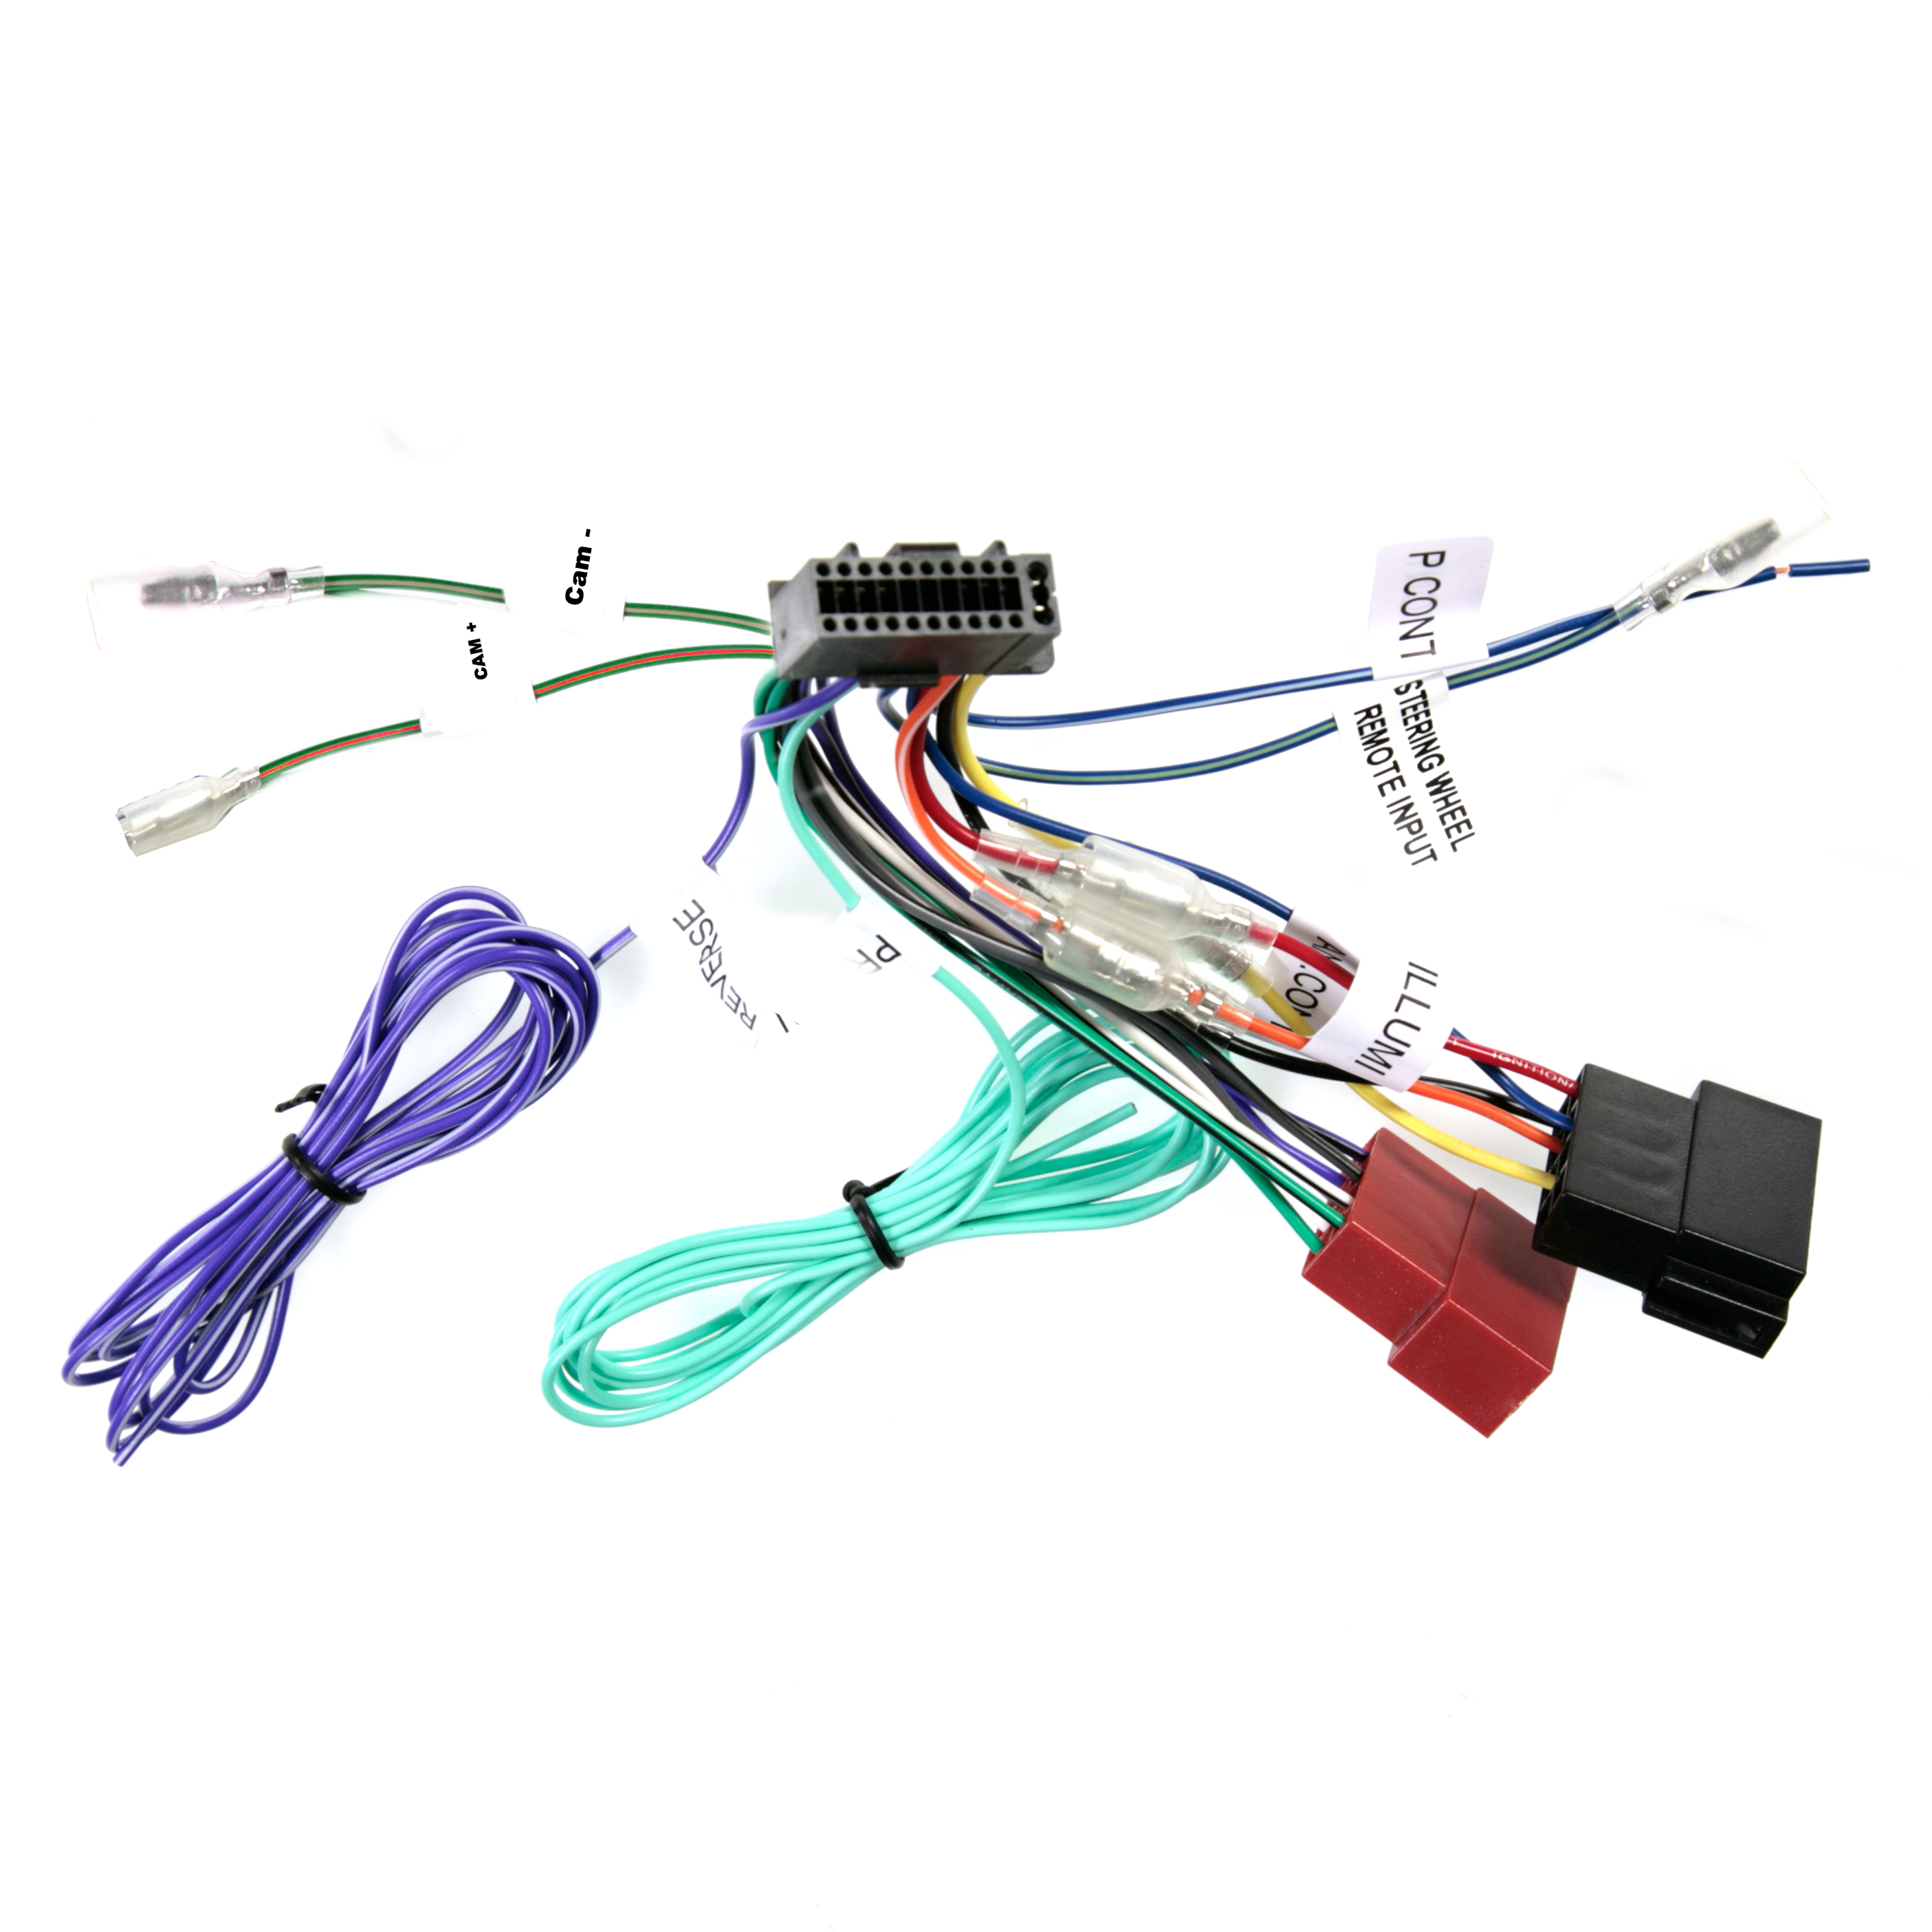 APP8KE6 secondary harnesses aerpro aerpro wiring harness sony at mifinder.co